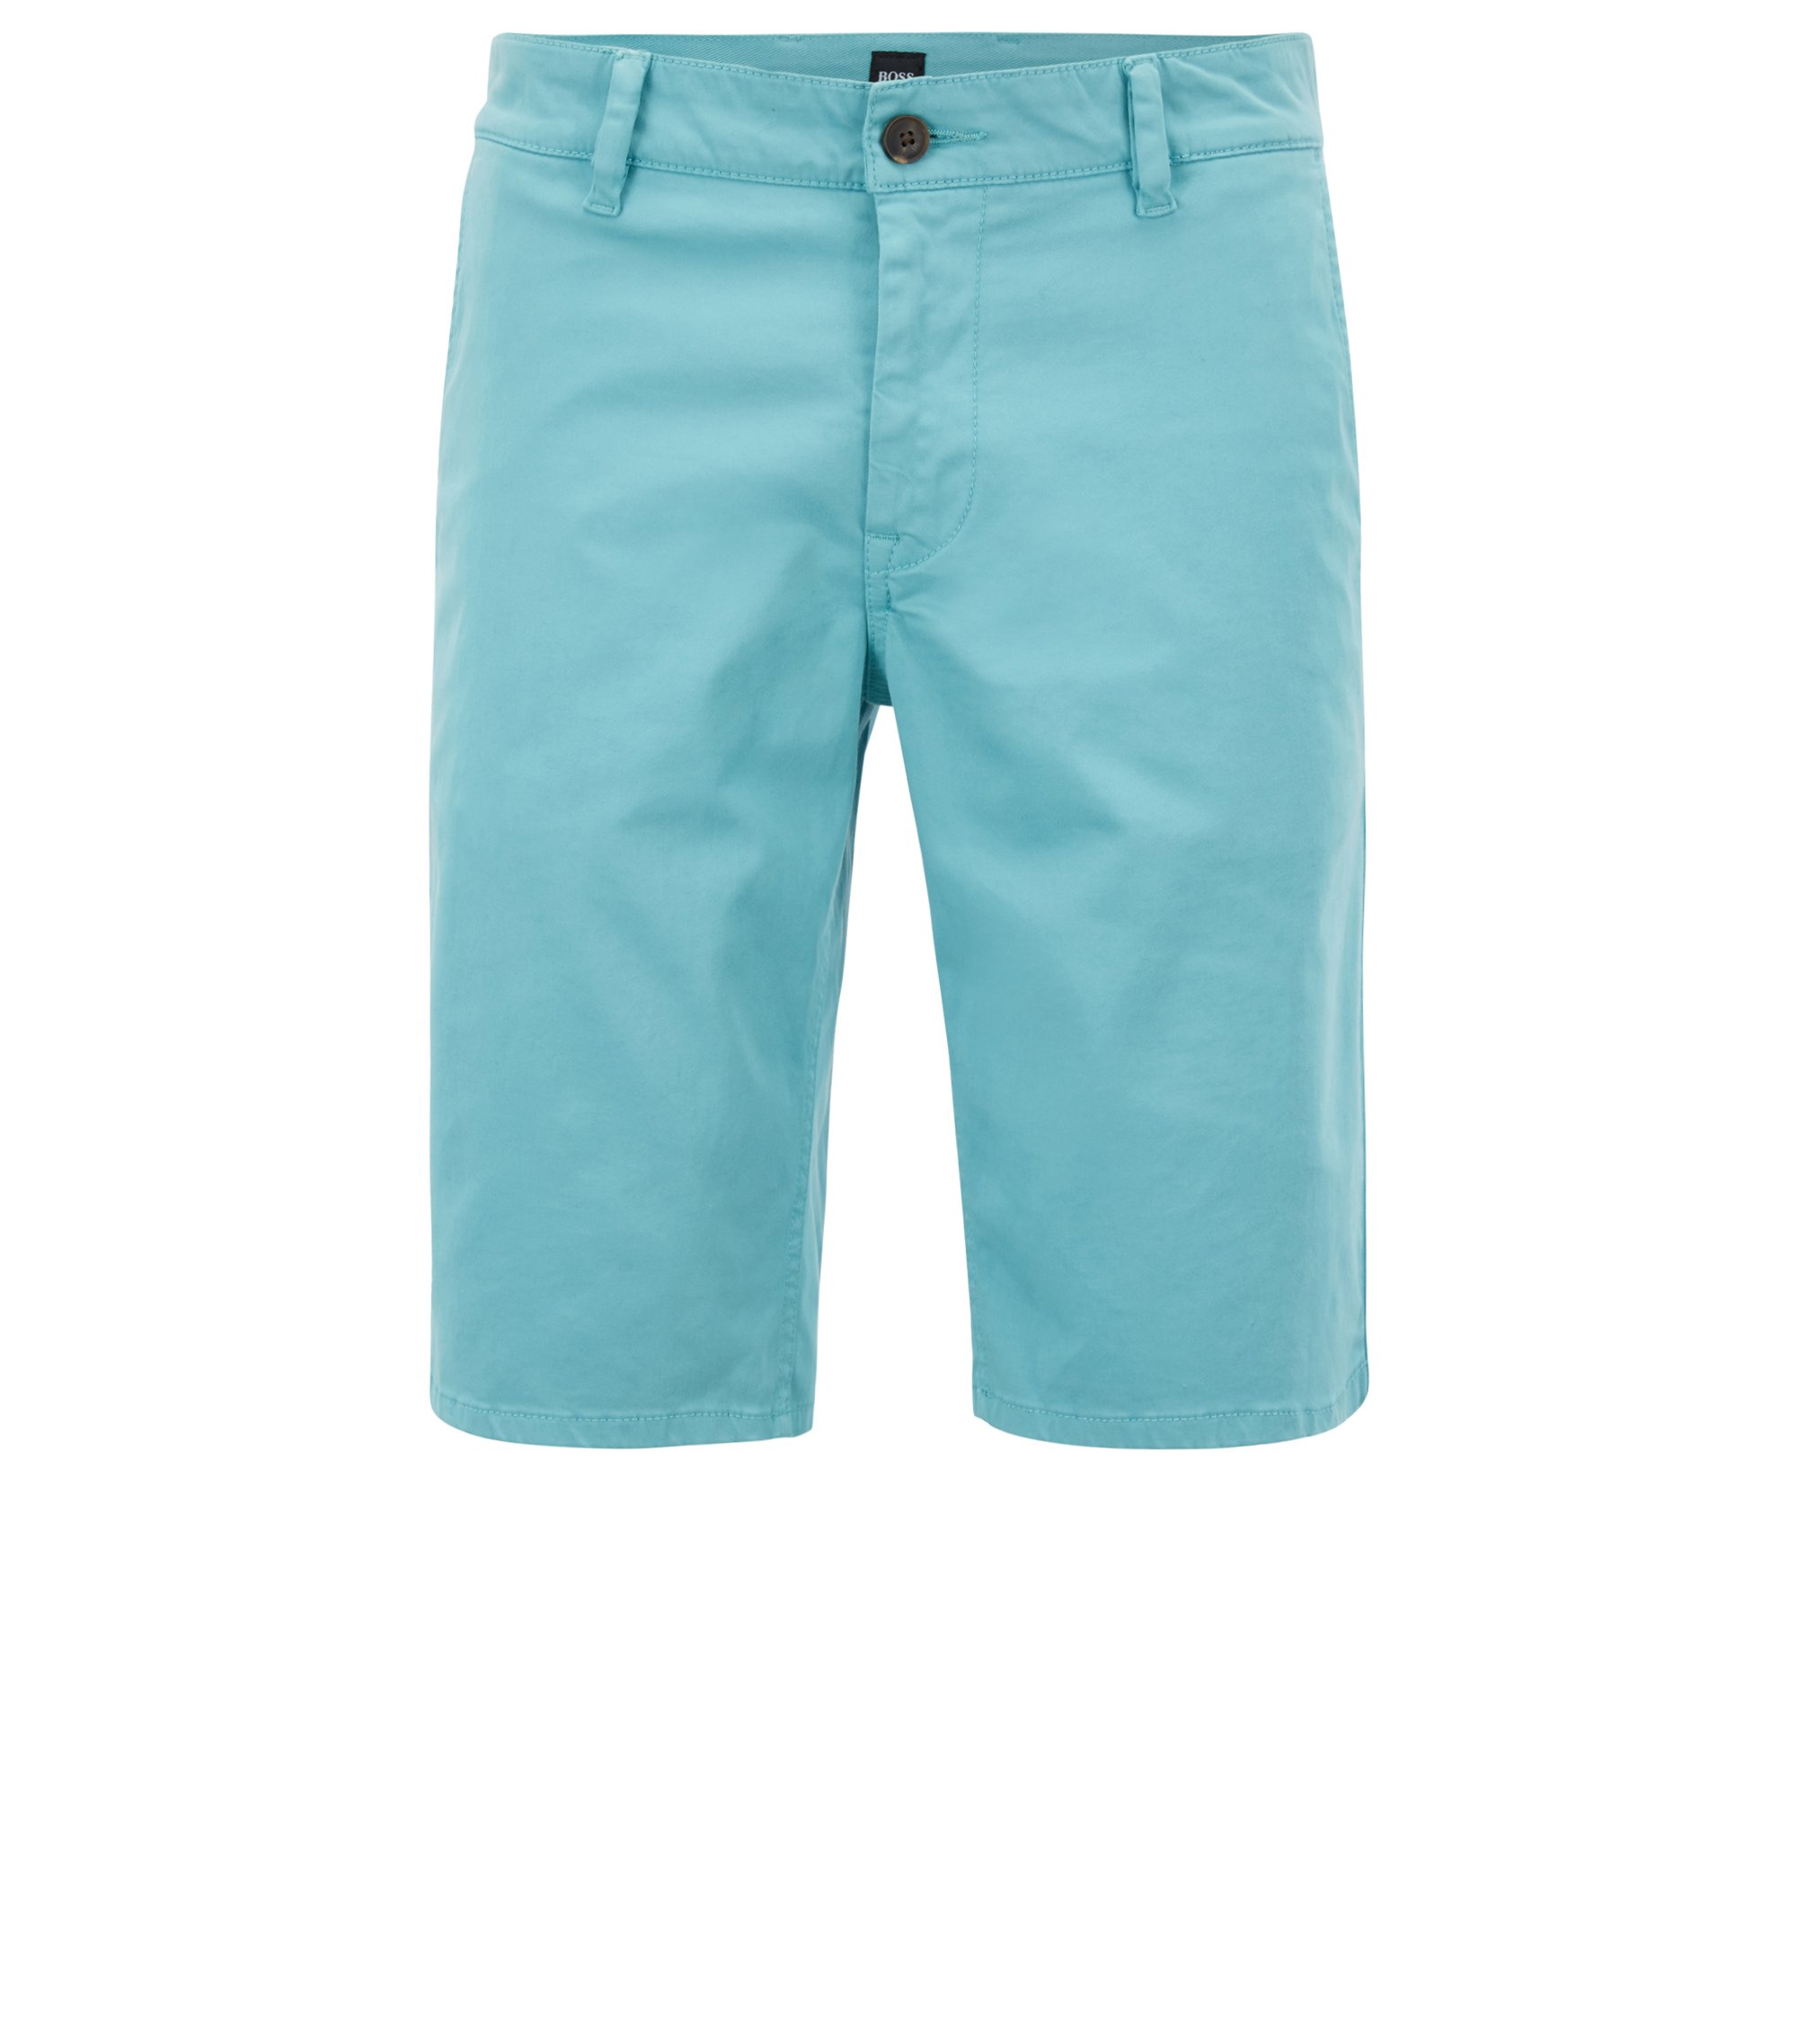 Stretch Cotton Chino Short, Slim Fit | Schino Slim Shorts D, Turquoise